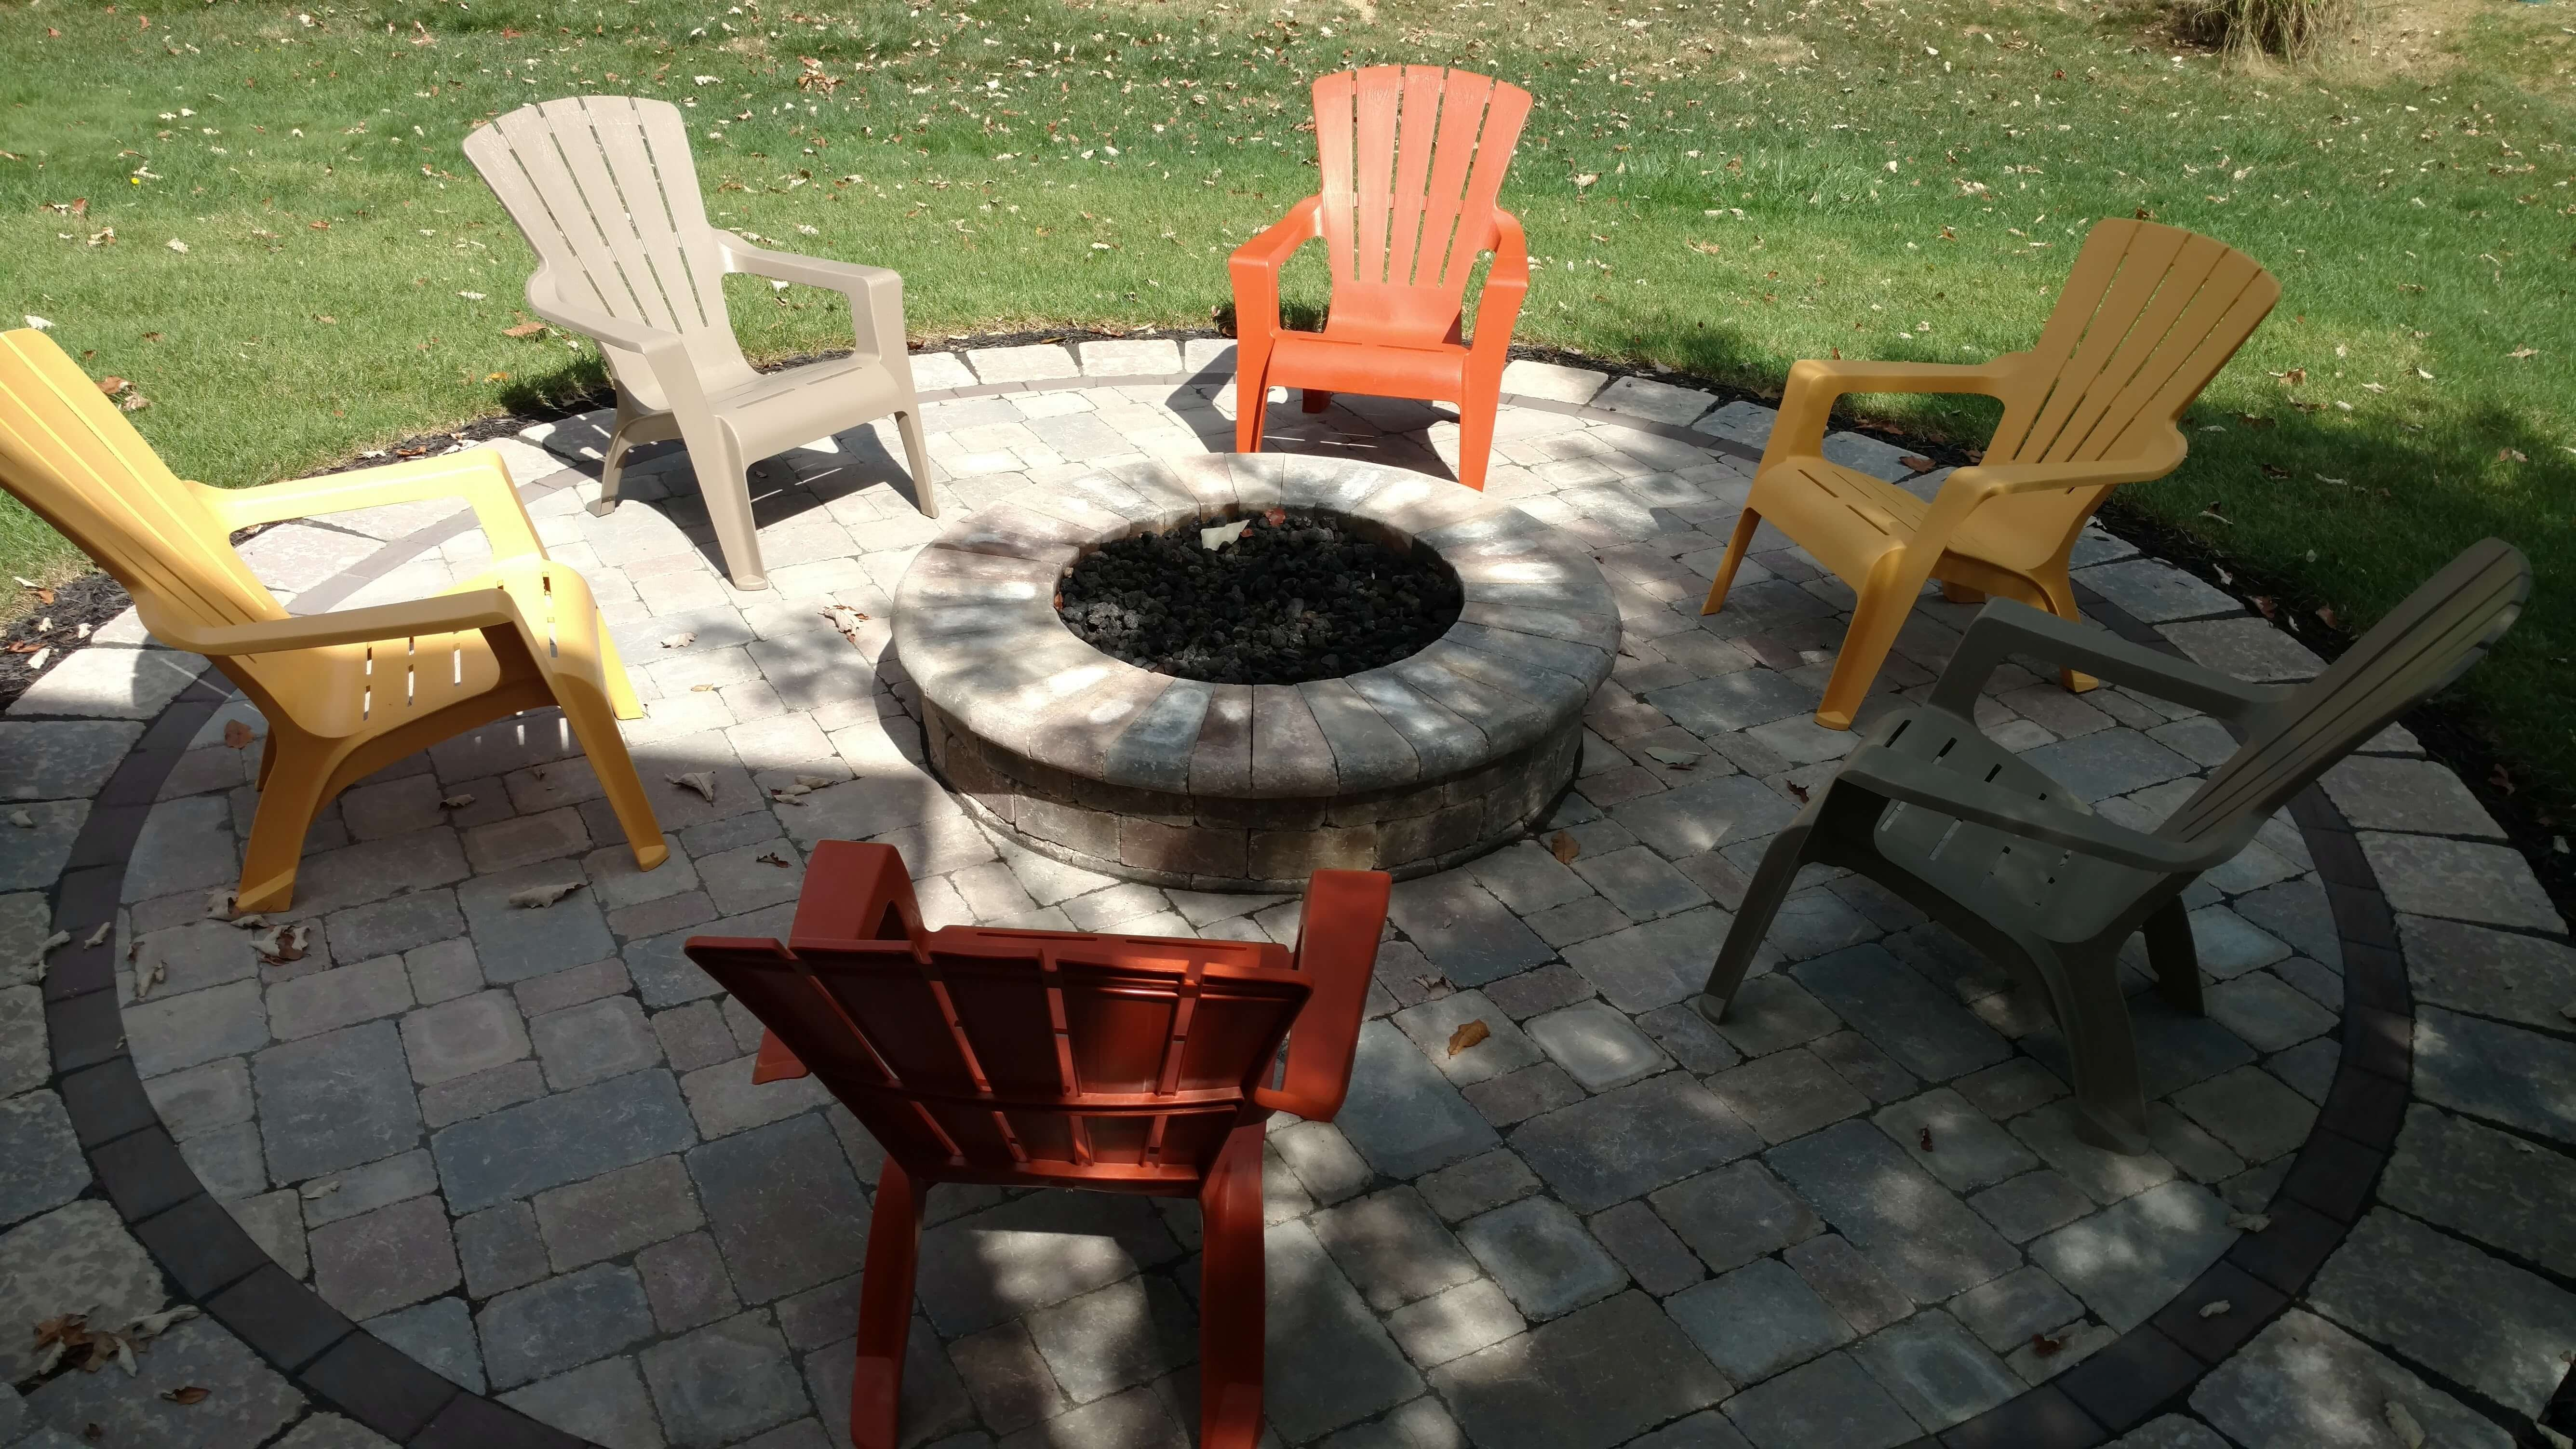 Custom fire pit with colorful chairs